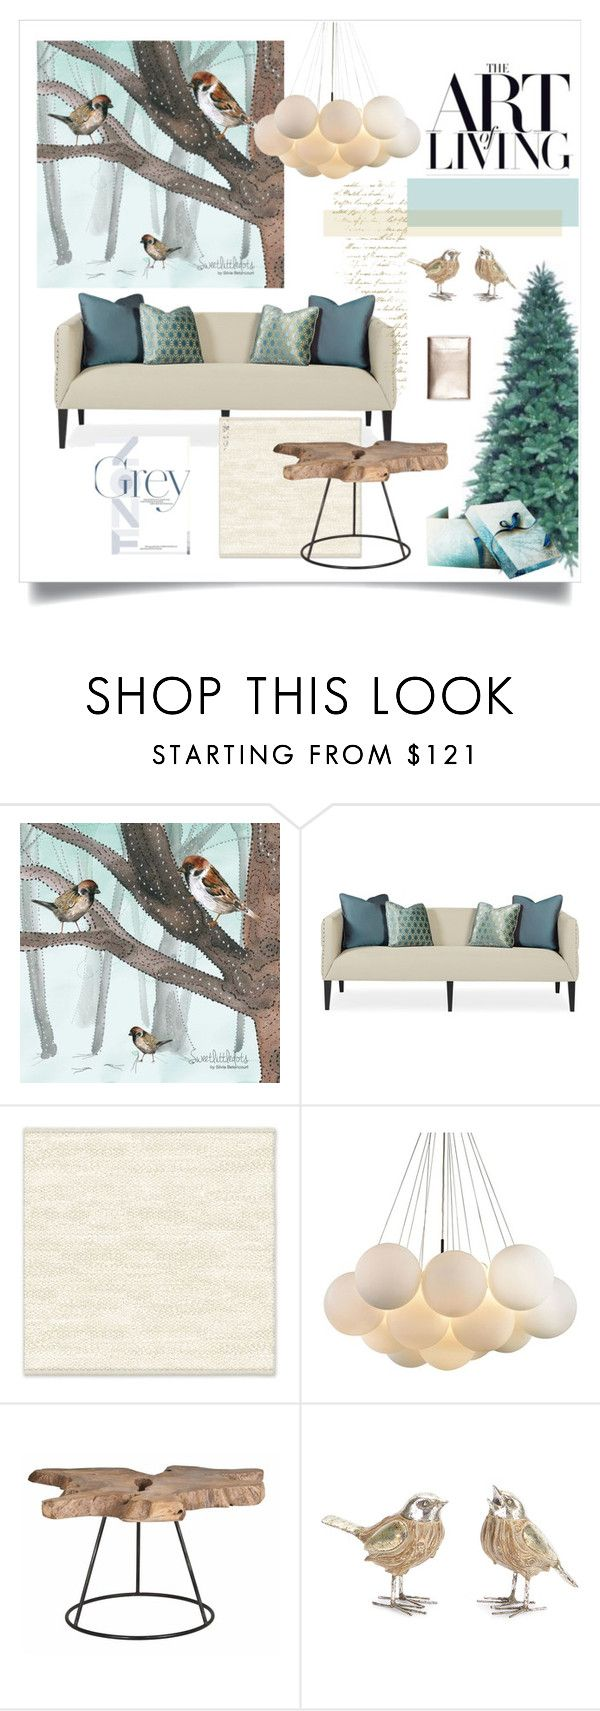 """Feathered Friends"" by judysingley-polyvore ❤ liked on Polyvore featuring interior, interiors, interior design, home, home decor, interior decorating and West Elm"